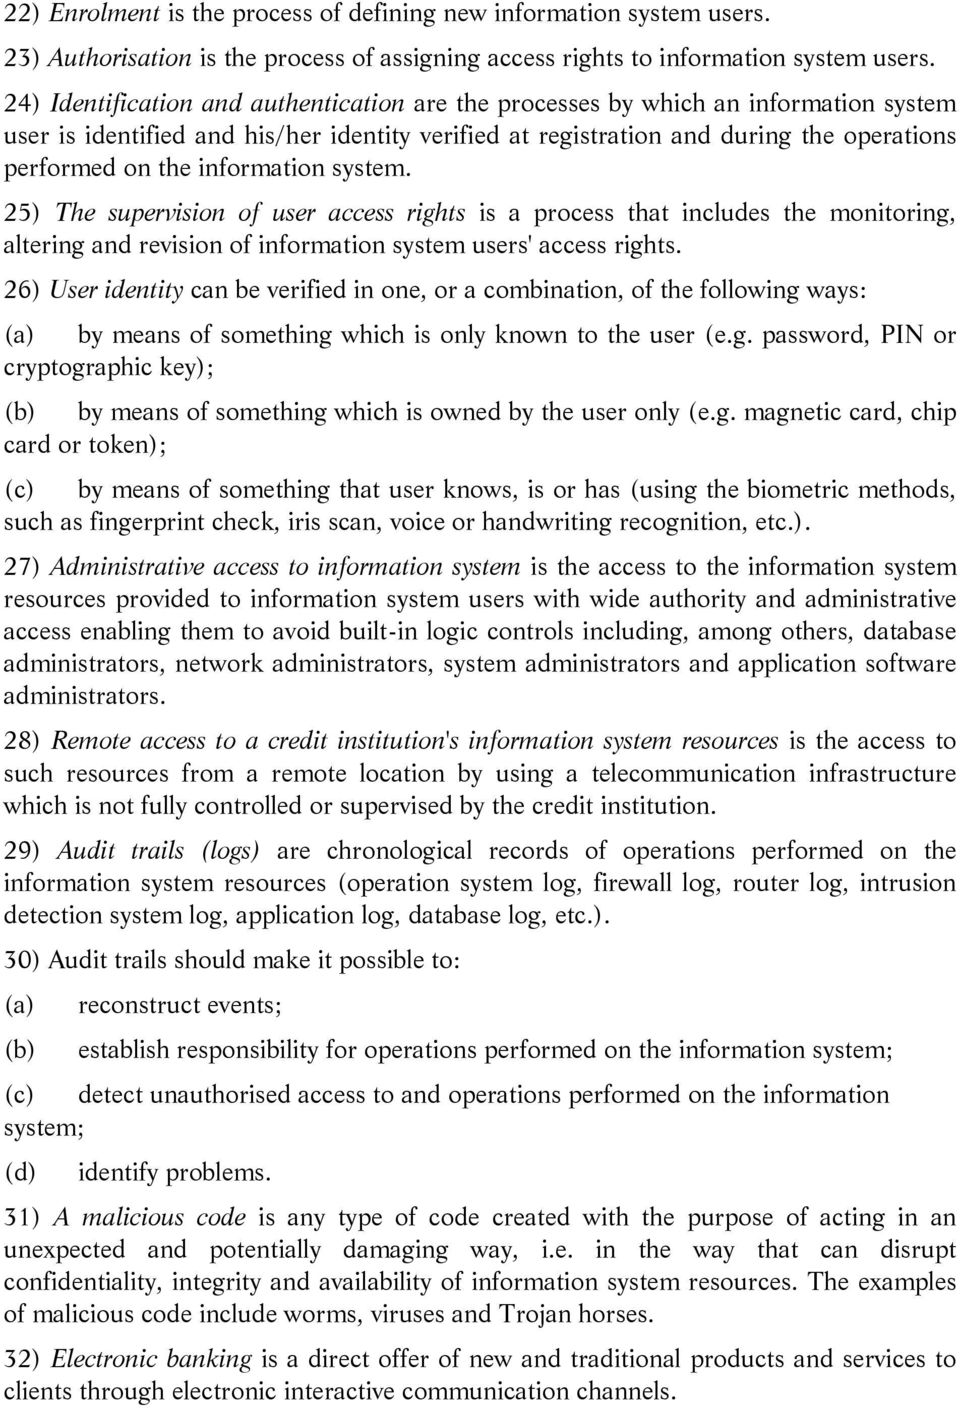 information system. 25) The supervision of user access rights is a process that includes the monitoring, altering and revision of information system users' access rights.